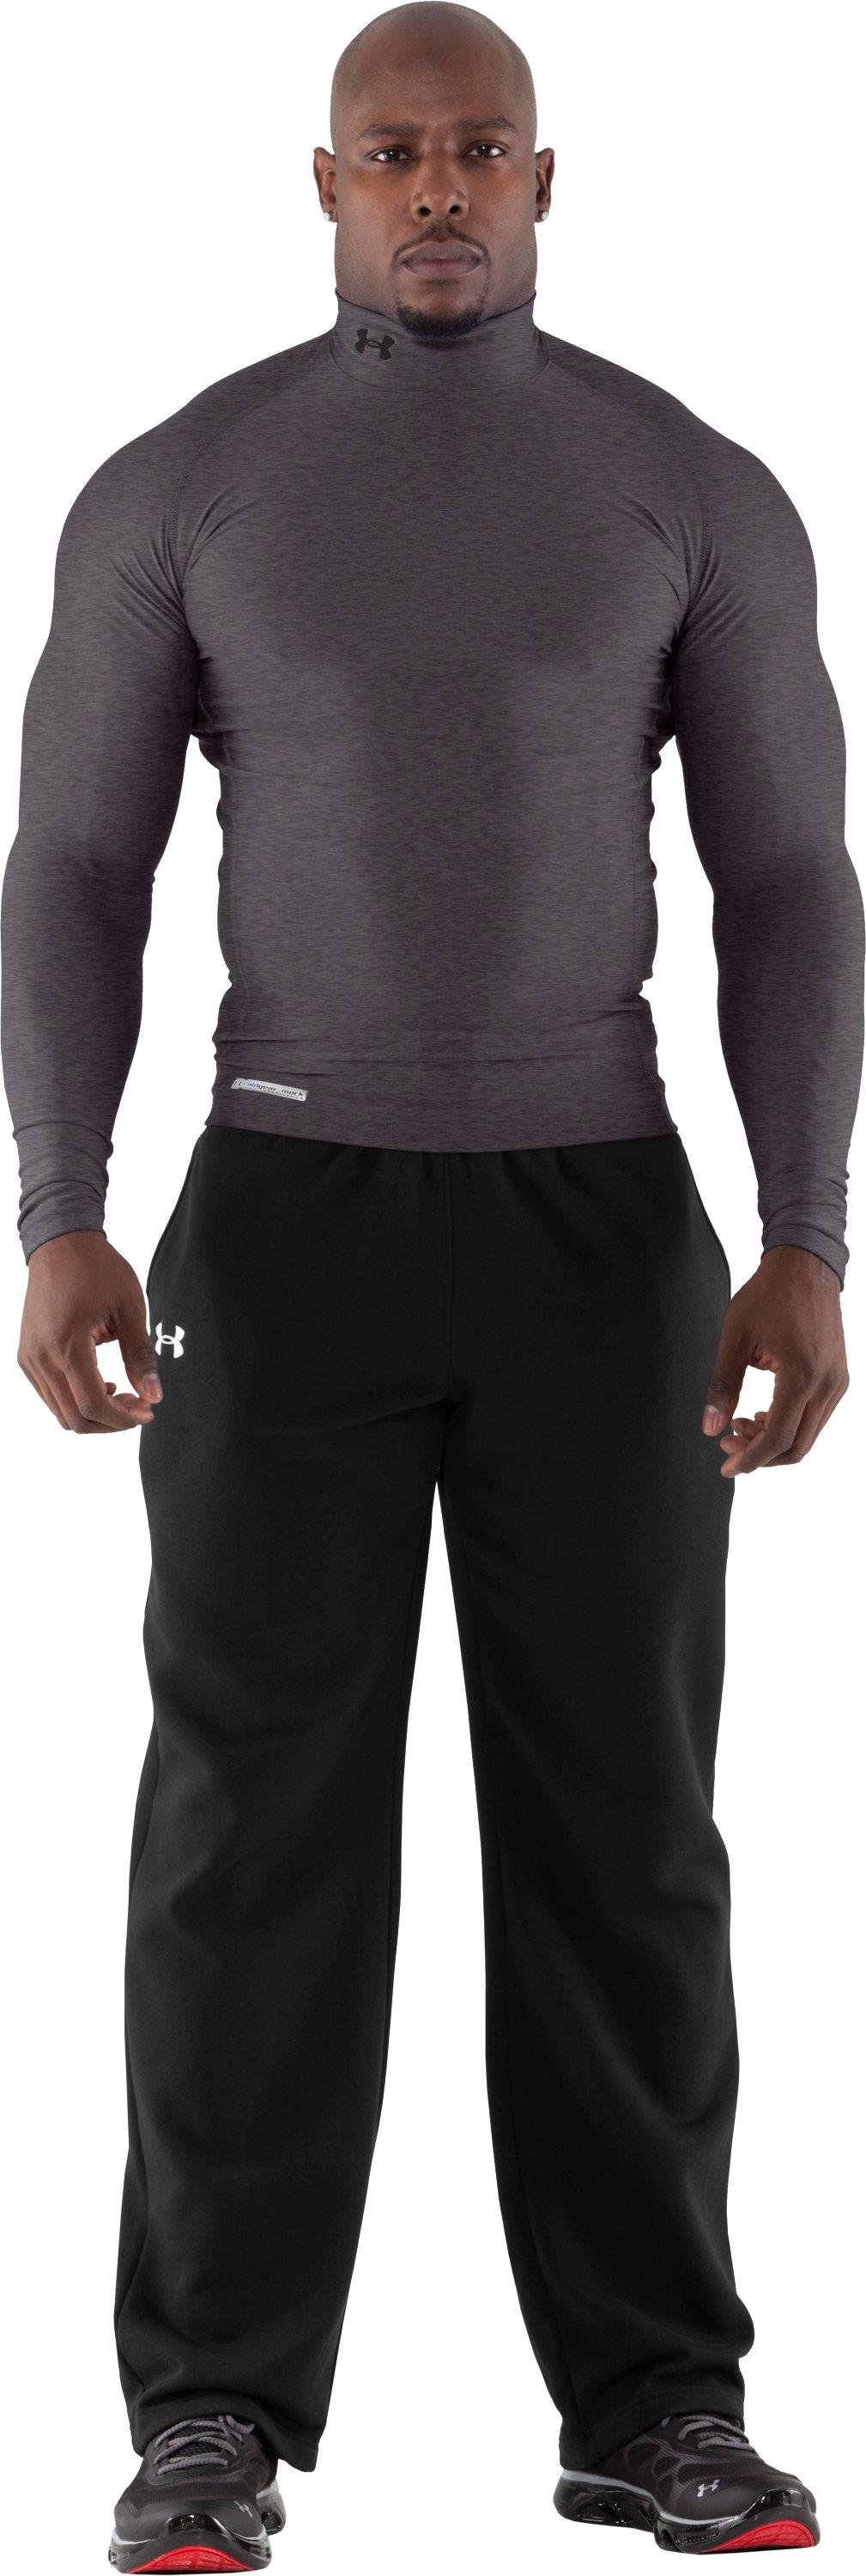 Men's ColdGear® Evo Long Sleeve Compression Mock, Carbon Heather, Front